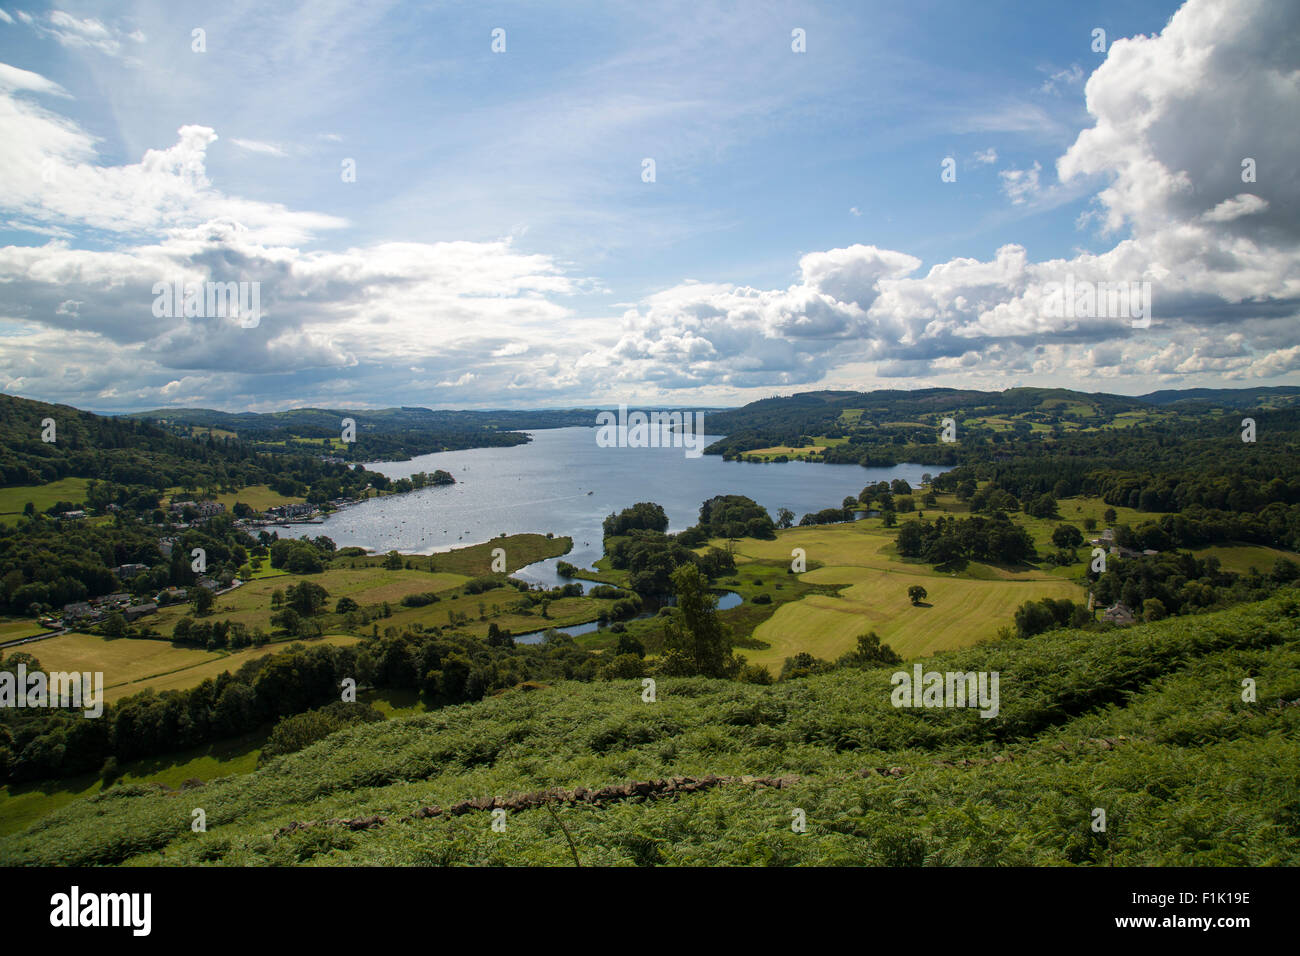 A view across Lake Windermere in The Lake District, England. - Stock Image